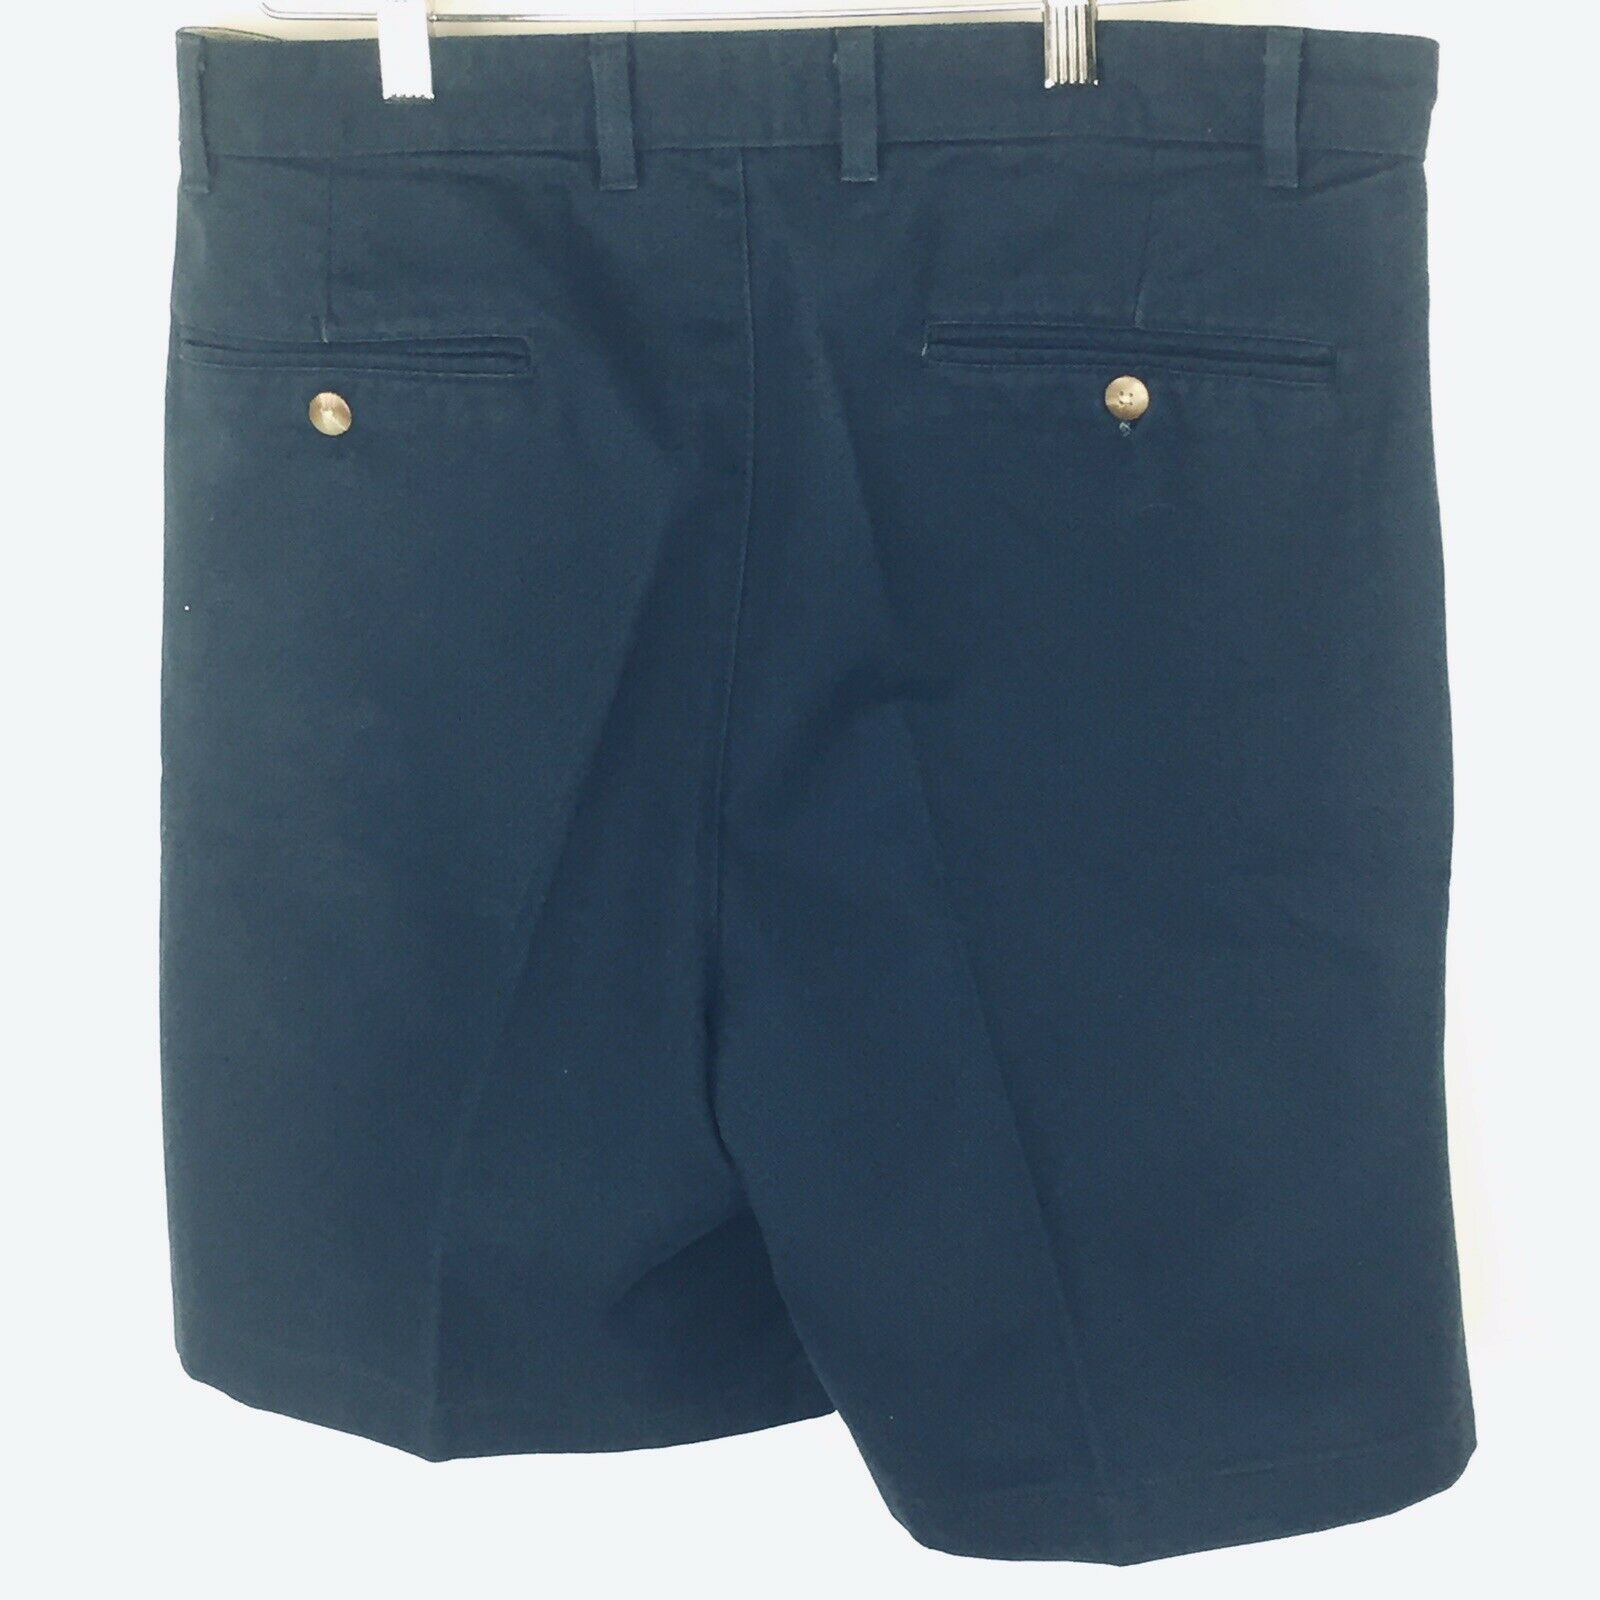 Roundtree and York Mens Shorts size 34 Navy Blue Cotton Pleated Front  image 3